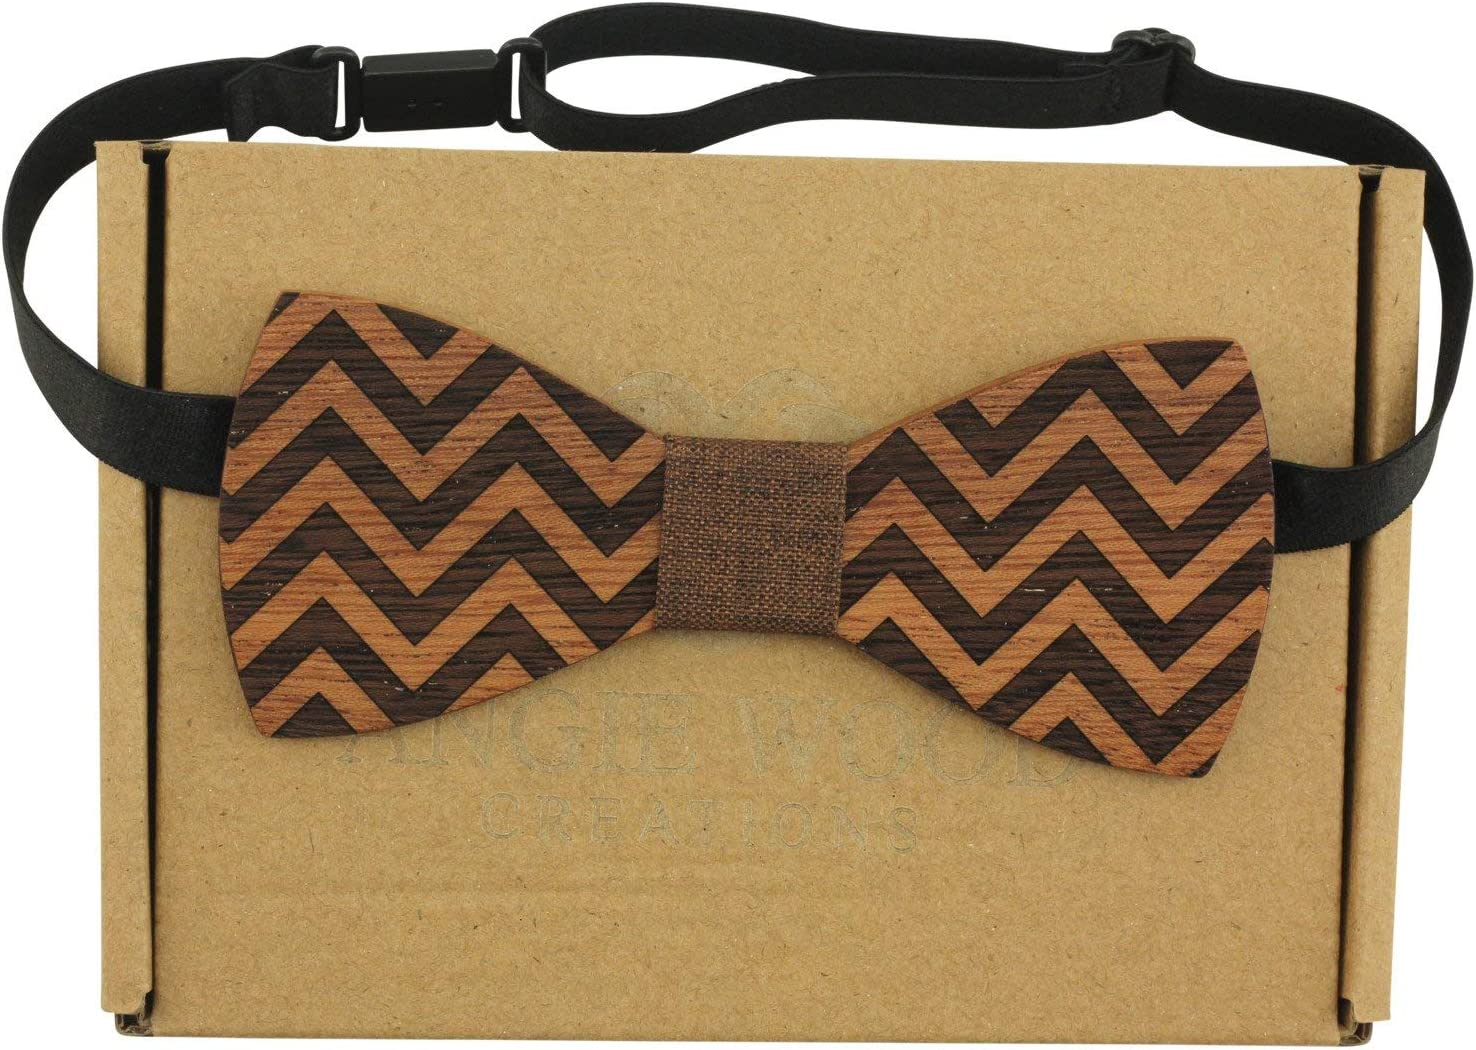 Striped Blue with White Dots Medium Round Men/'s Wooden Bow Tie with Zigzag Pattern